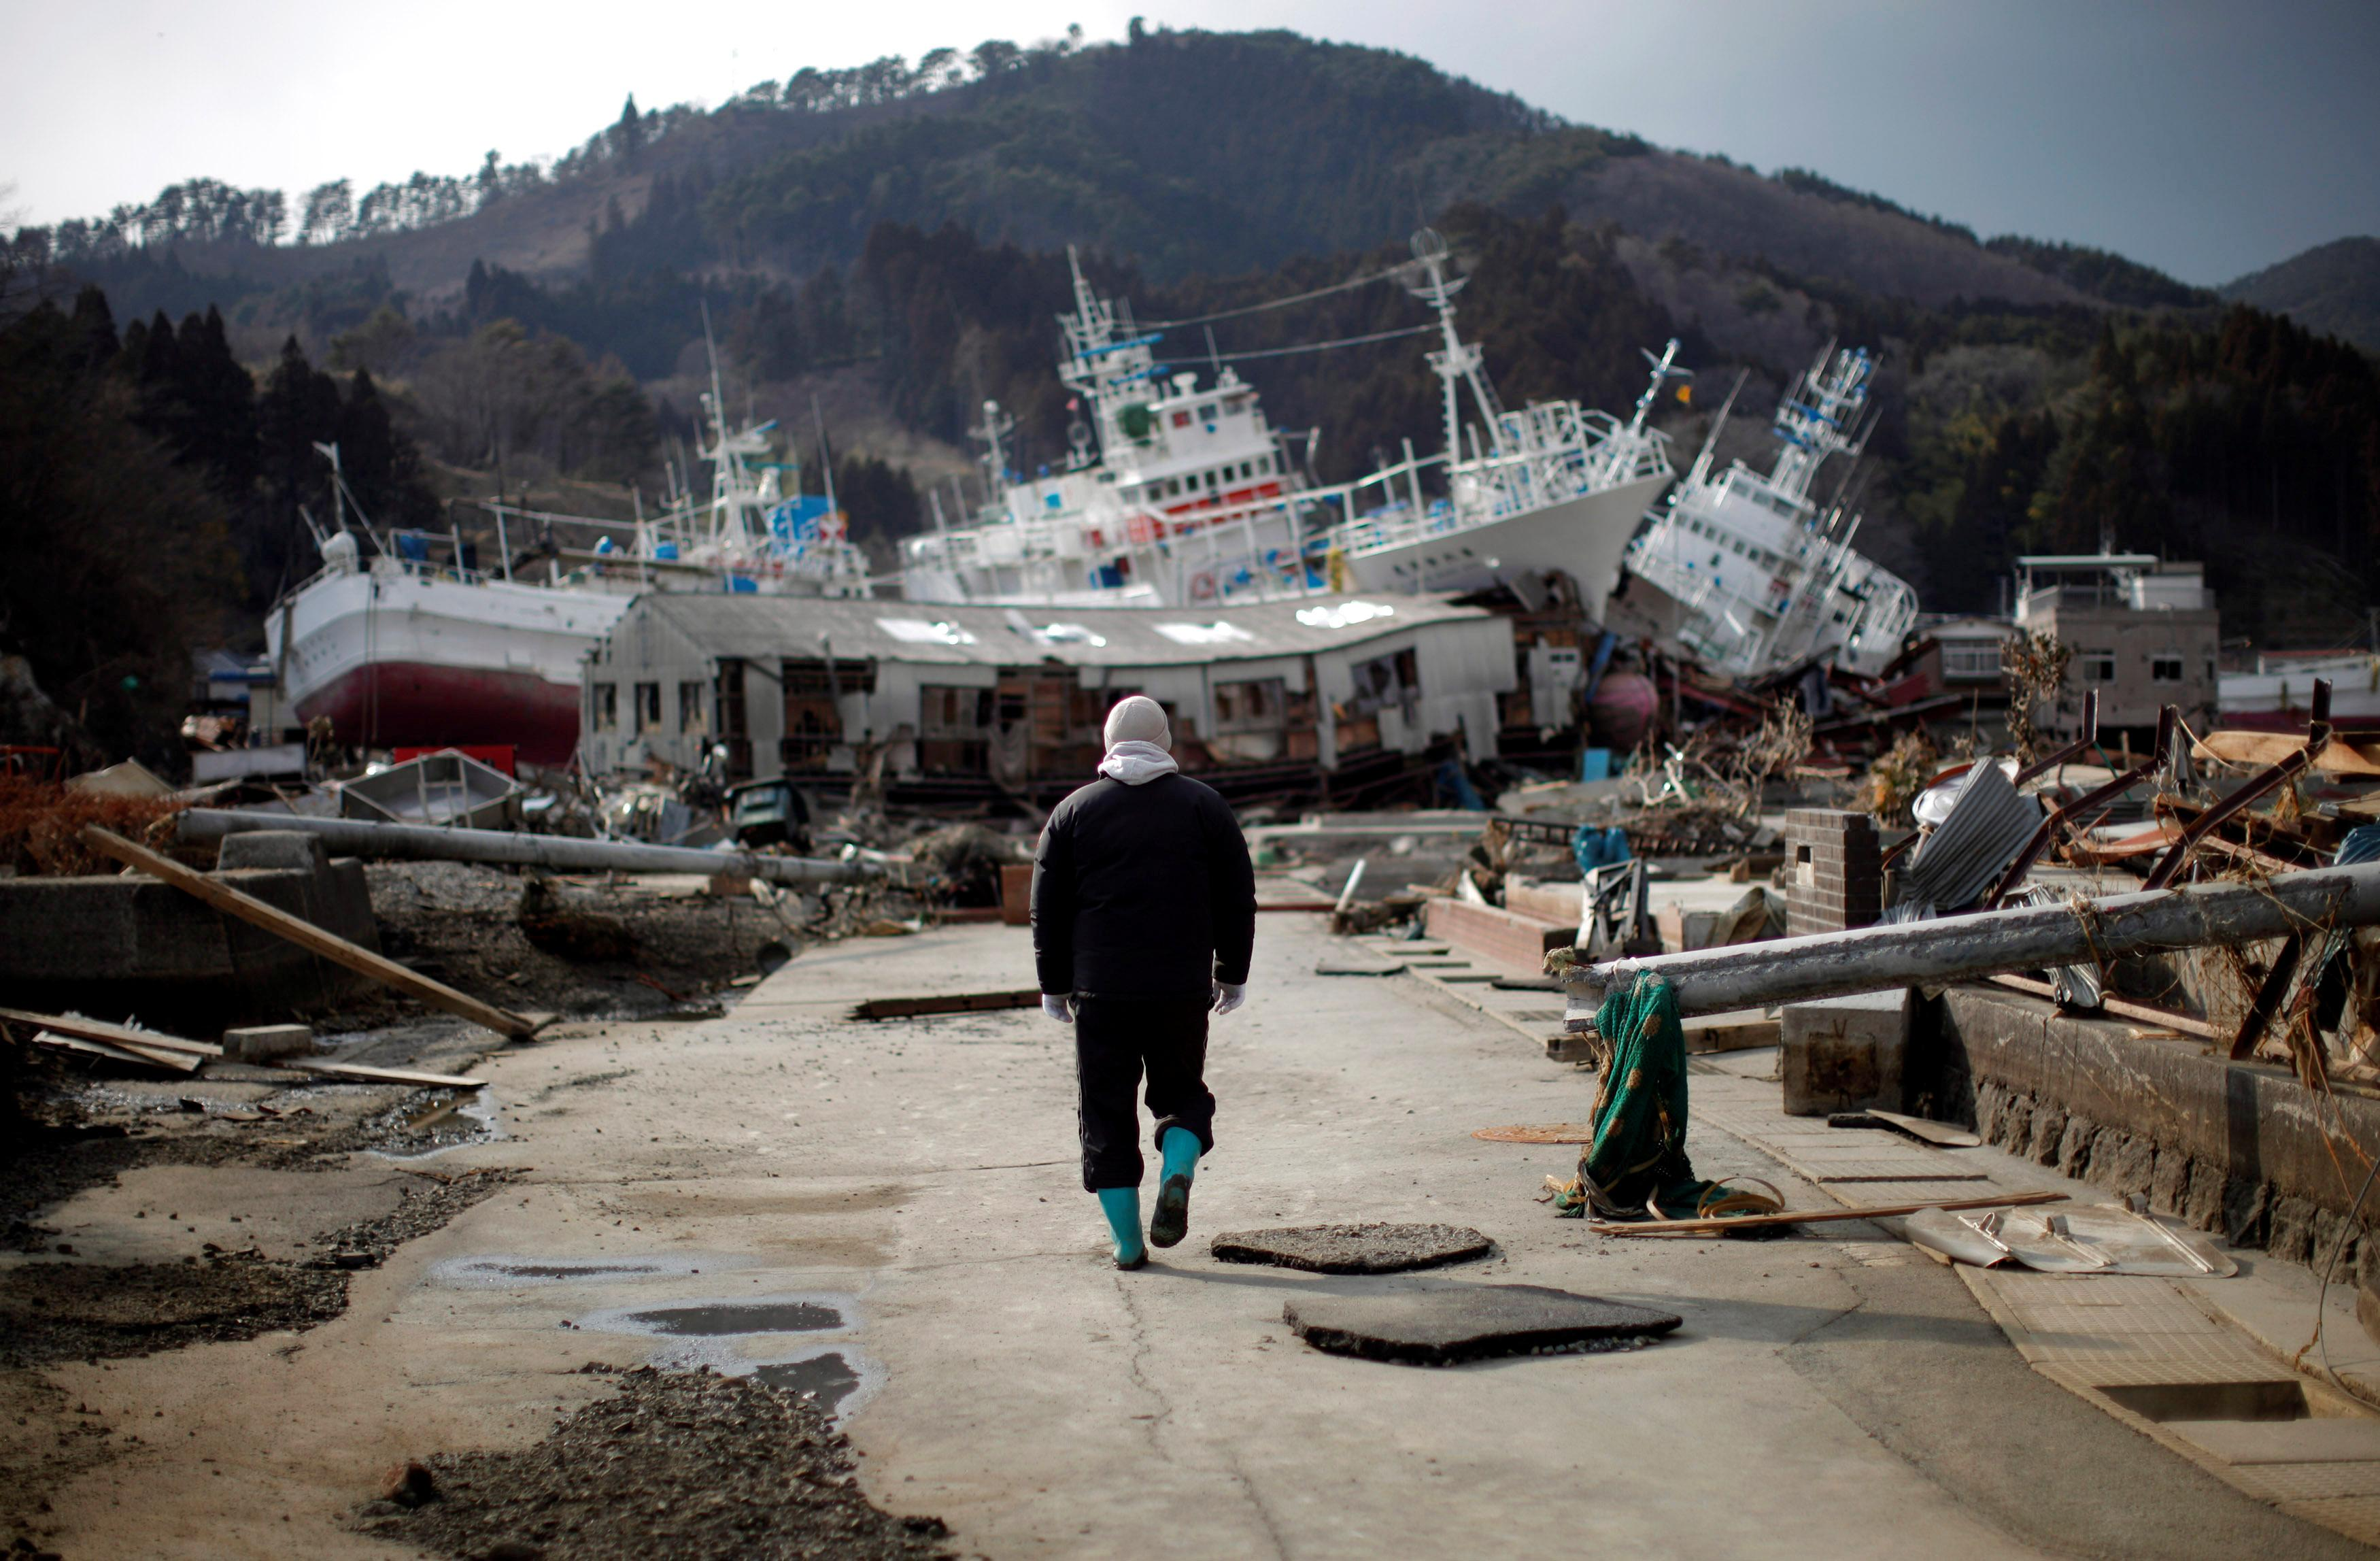 earthquake in japan likely in next 30 years experts say